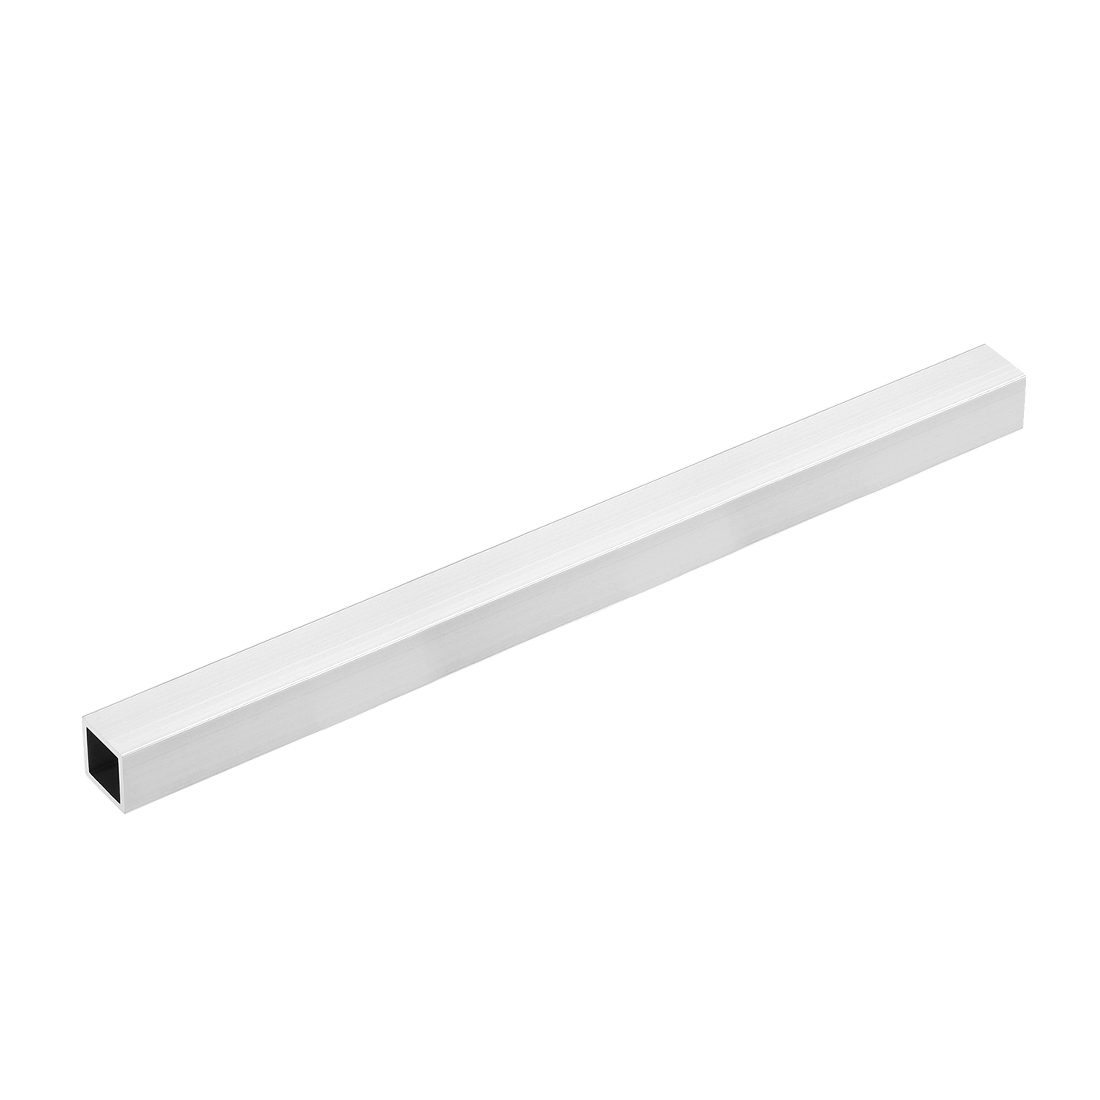 6063 Aluminum Square Tube 20mmx20mmx2mm Wall Thickness 300mm Length Pipe Tubing